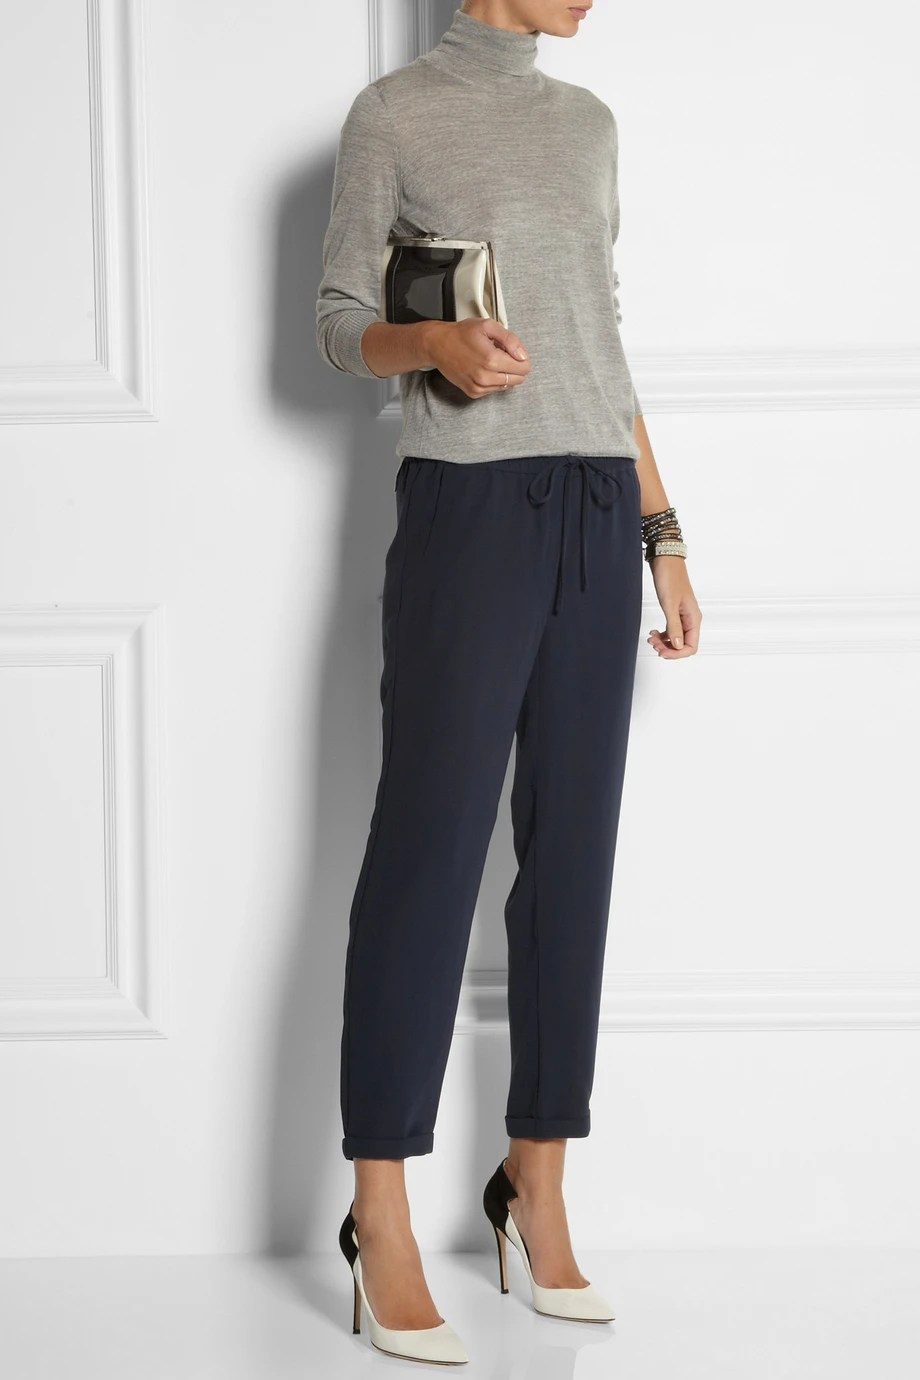 J.Crew  outfit